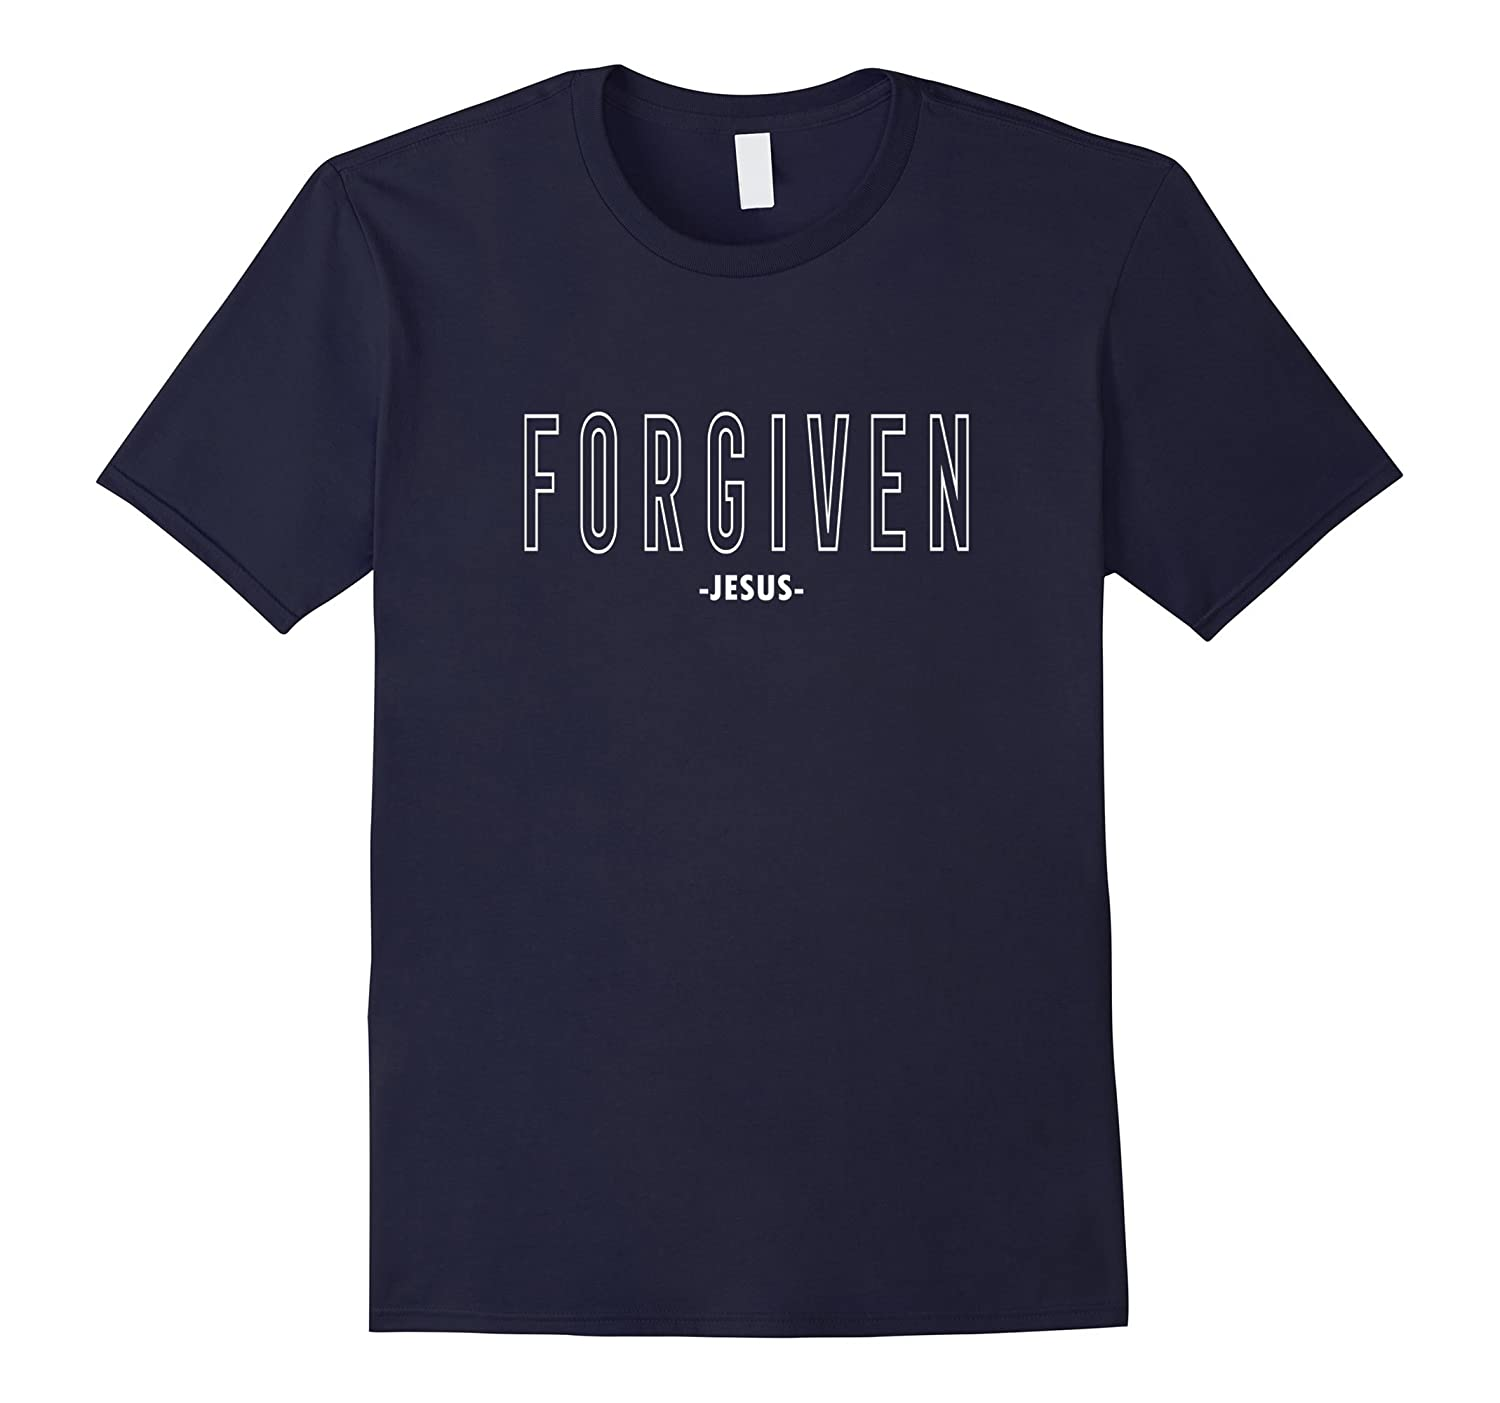 FORGIVEN -JESUS--TH